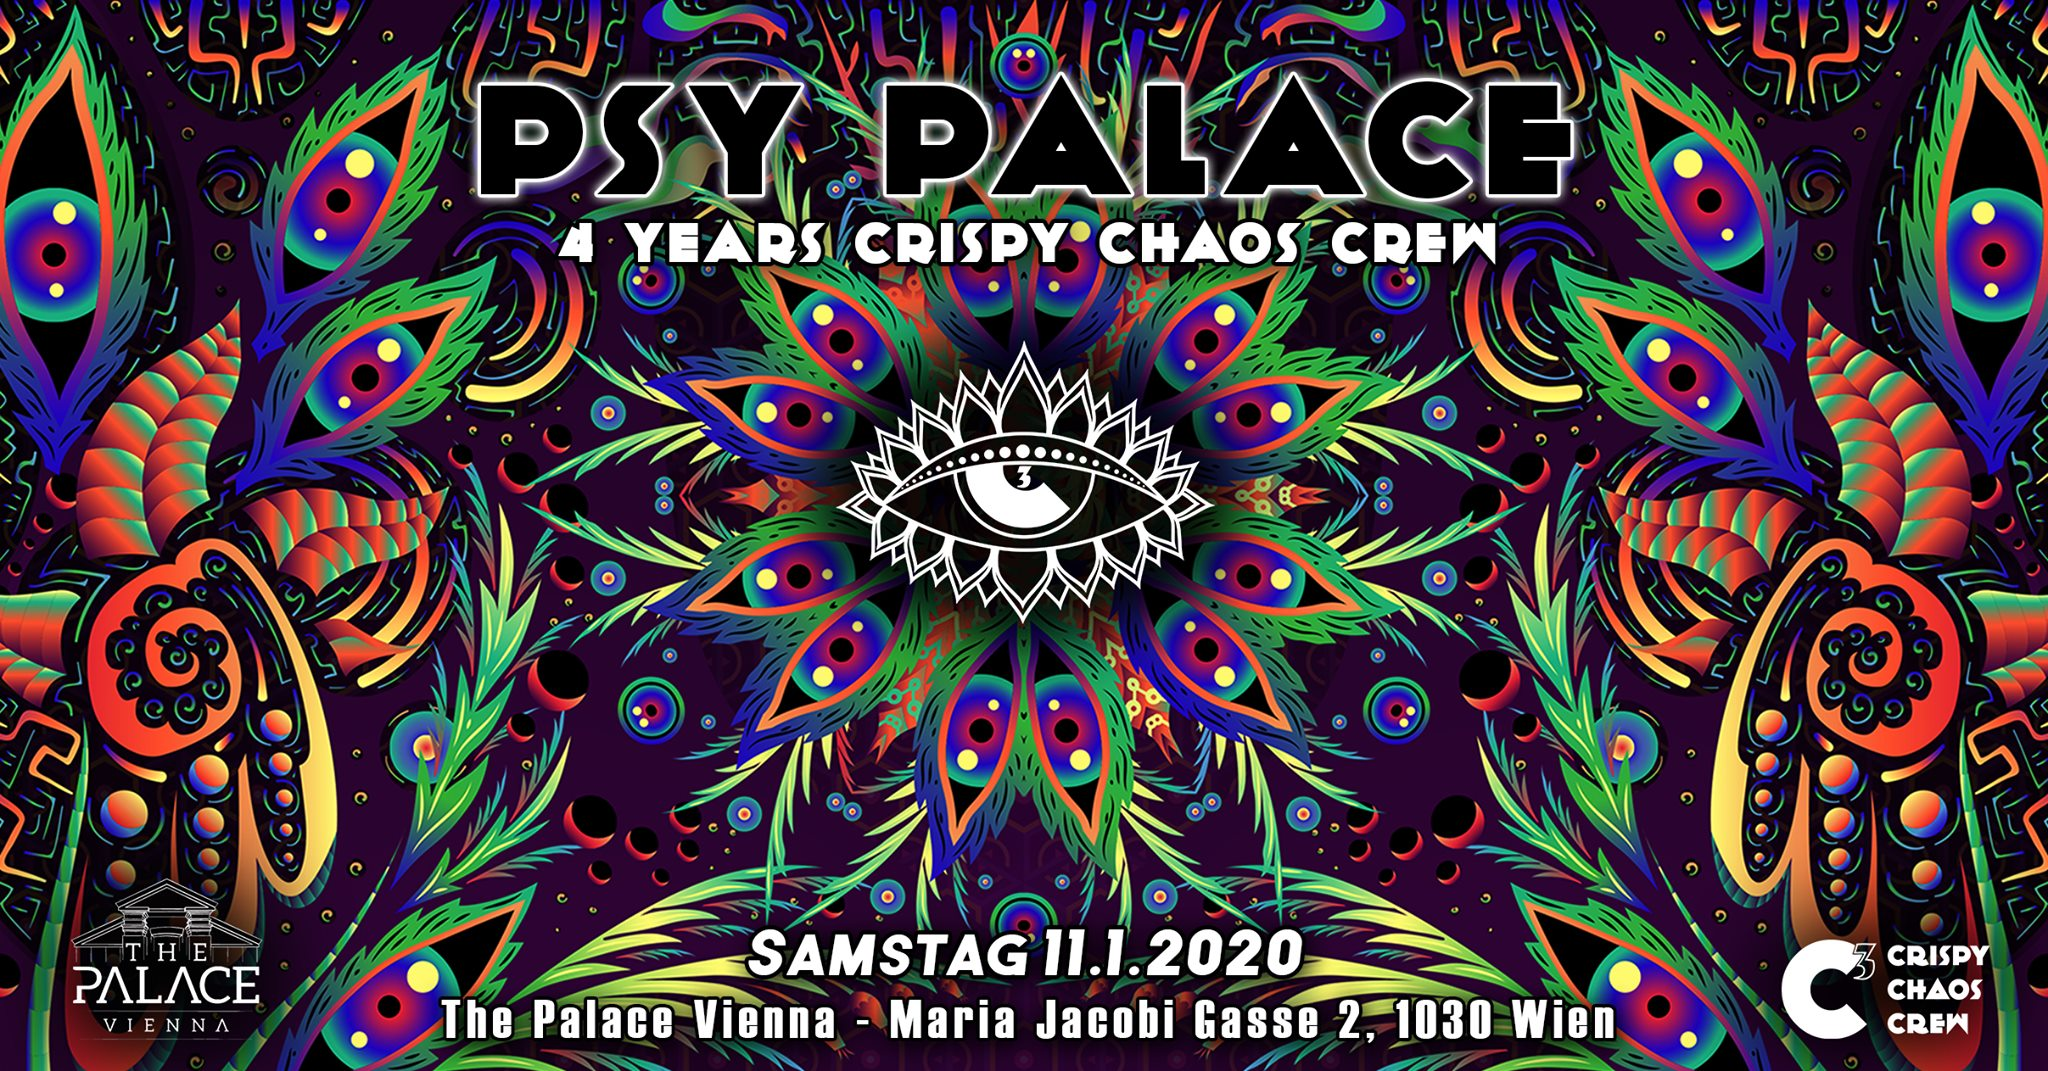 Psy Palace - 4 Years Crispy Chaos Crew am 11. January 2020 @ The Palace Vienna.